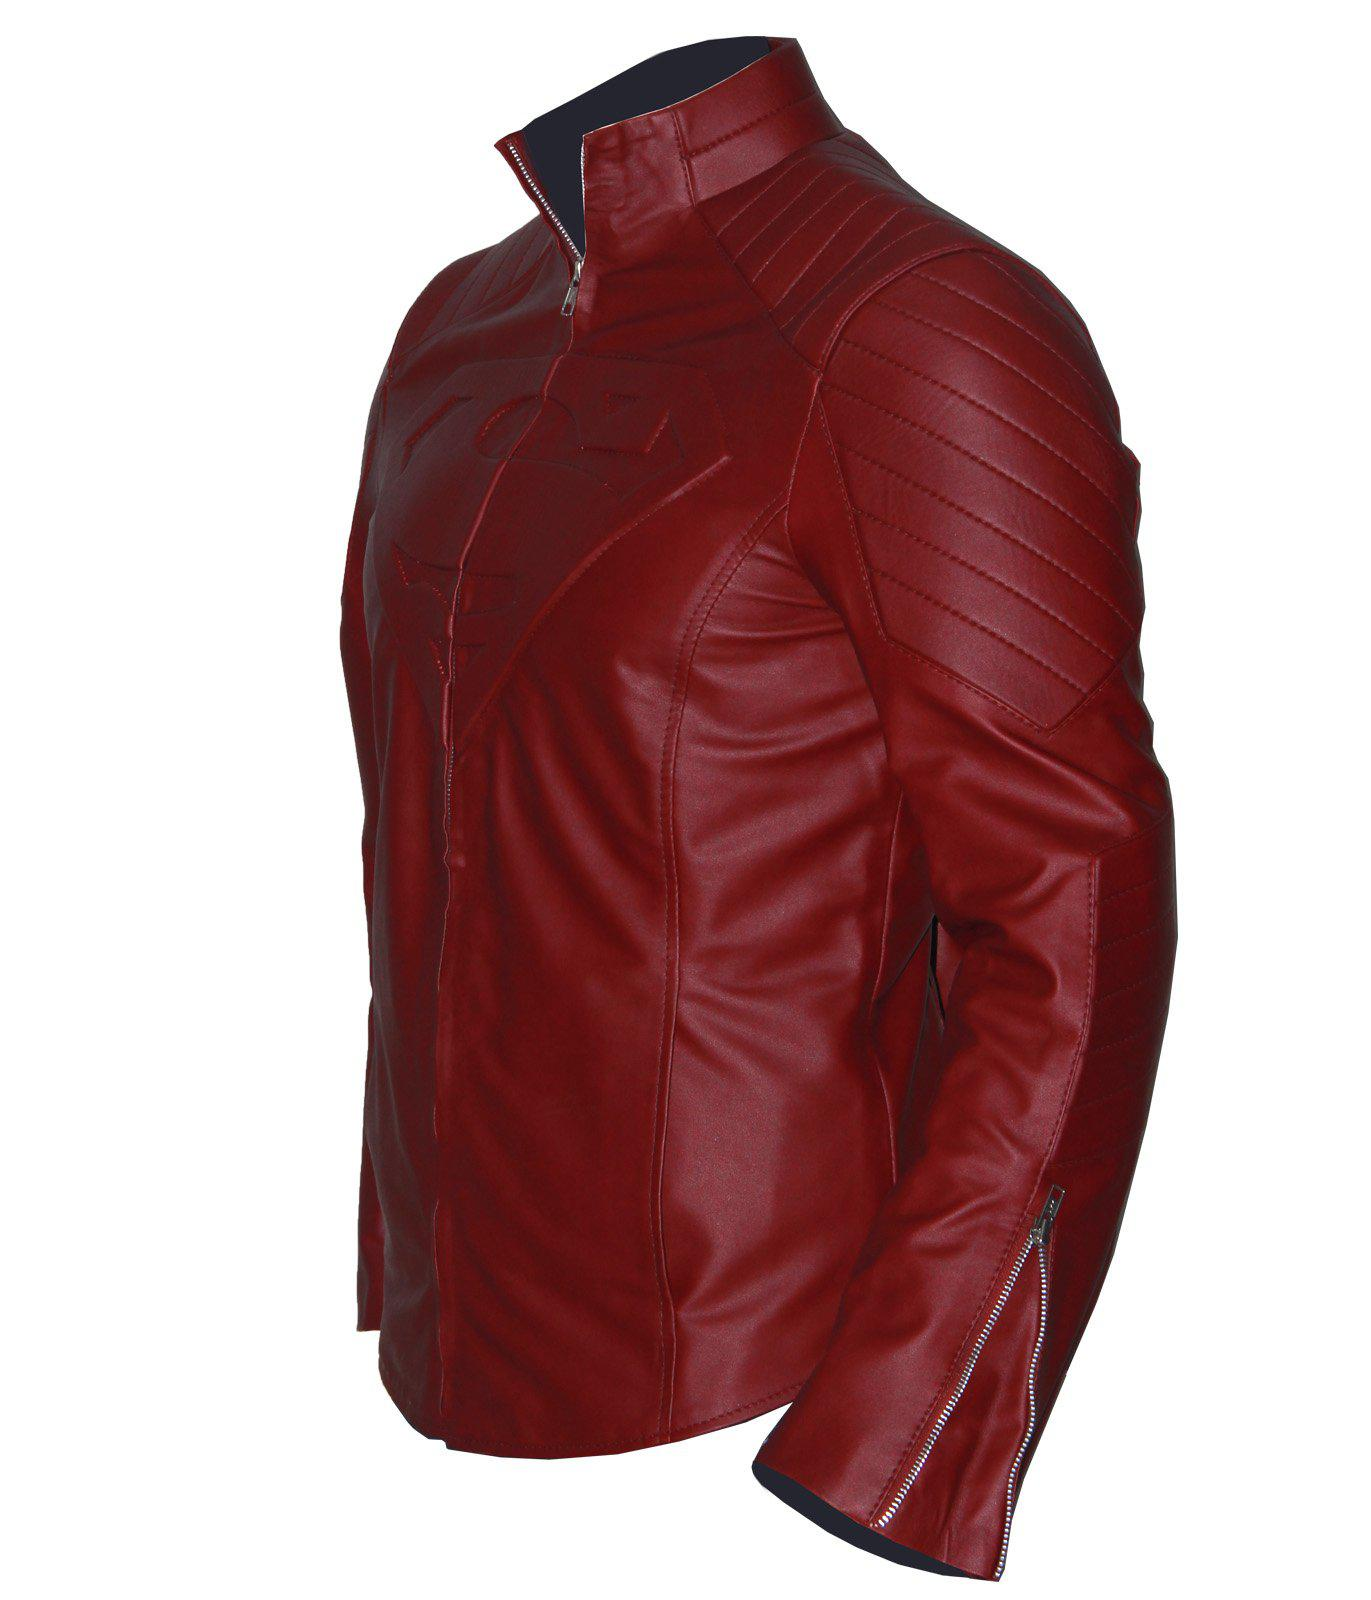 Red Smallville Tom Welling Clark Kent Superman Leather Jacket